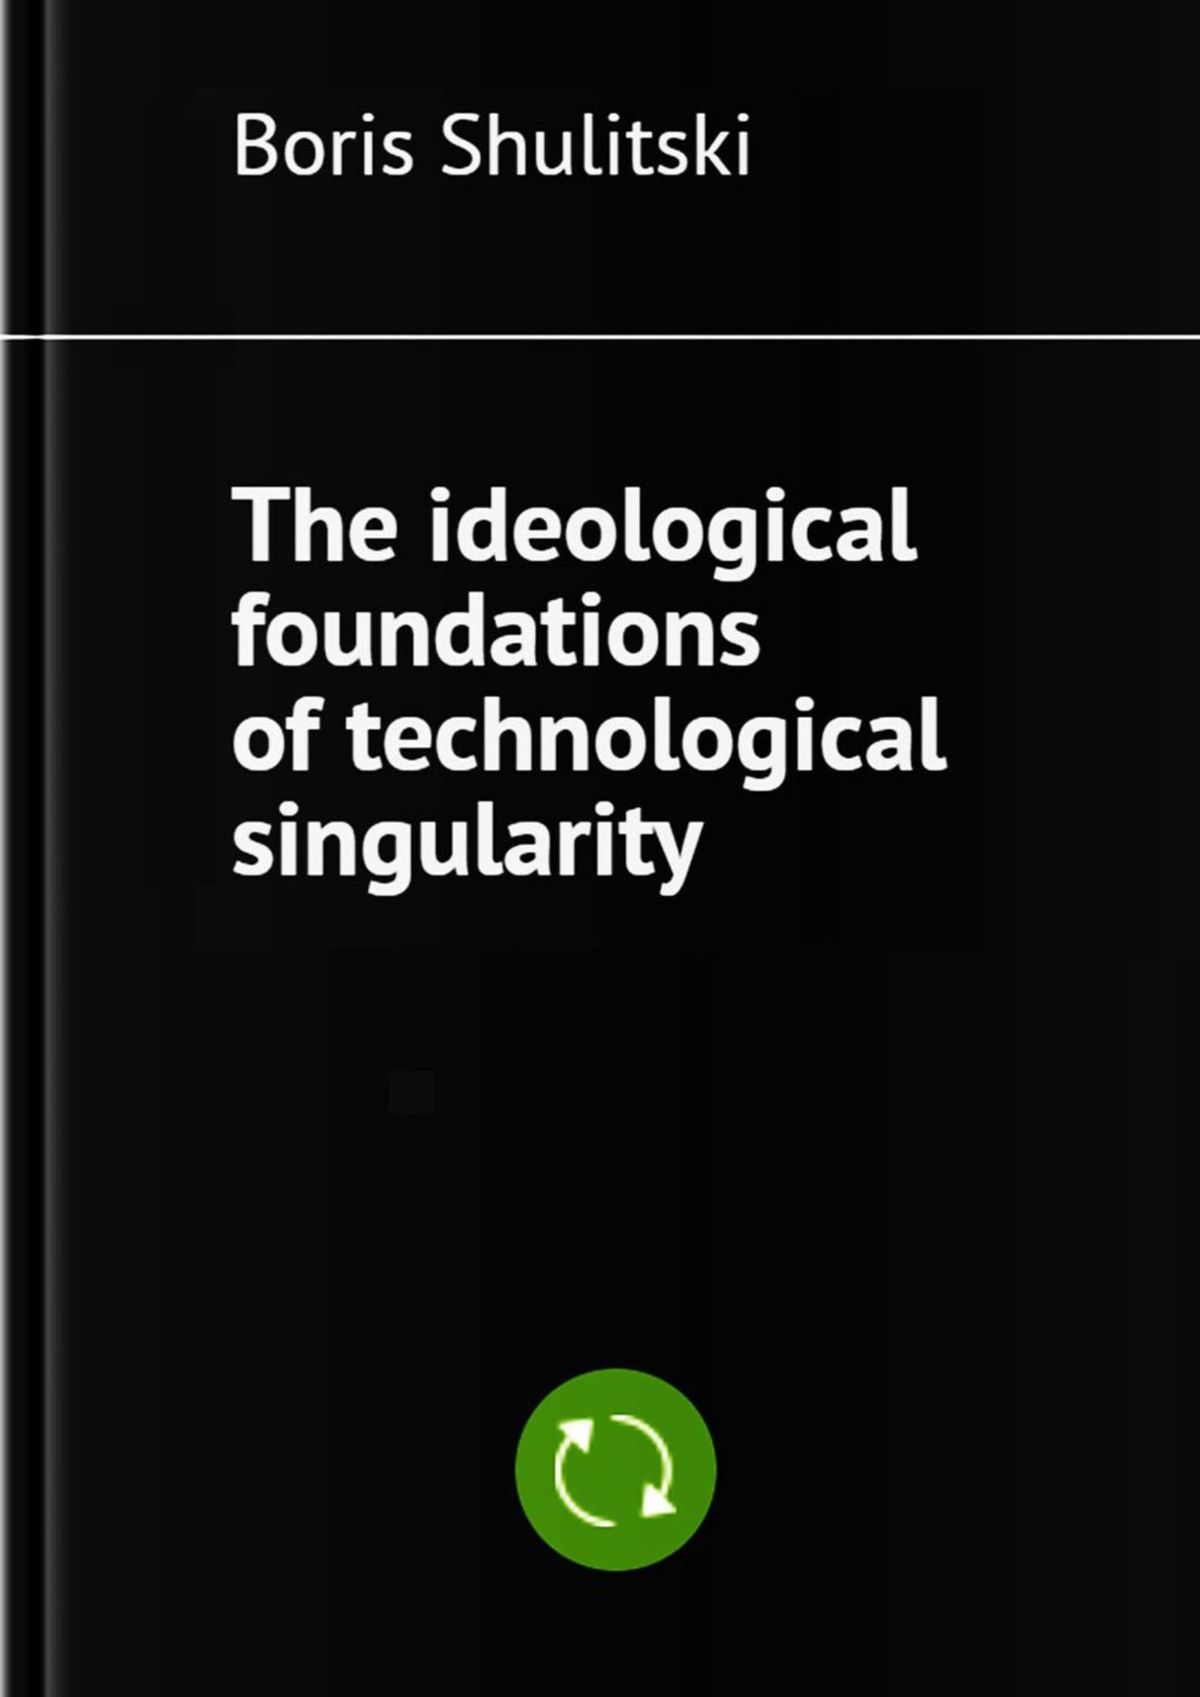 Boris Shulitski The ideological foundations of technological singularity купить недорого в Москве